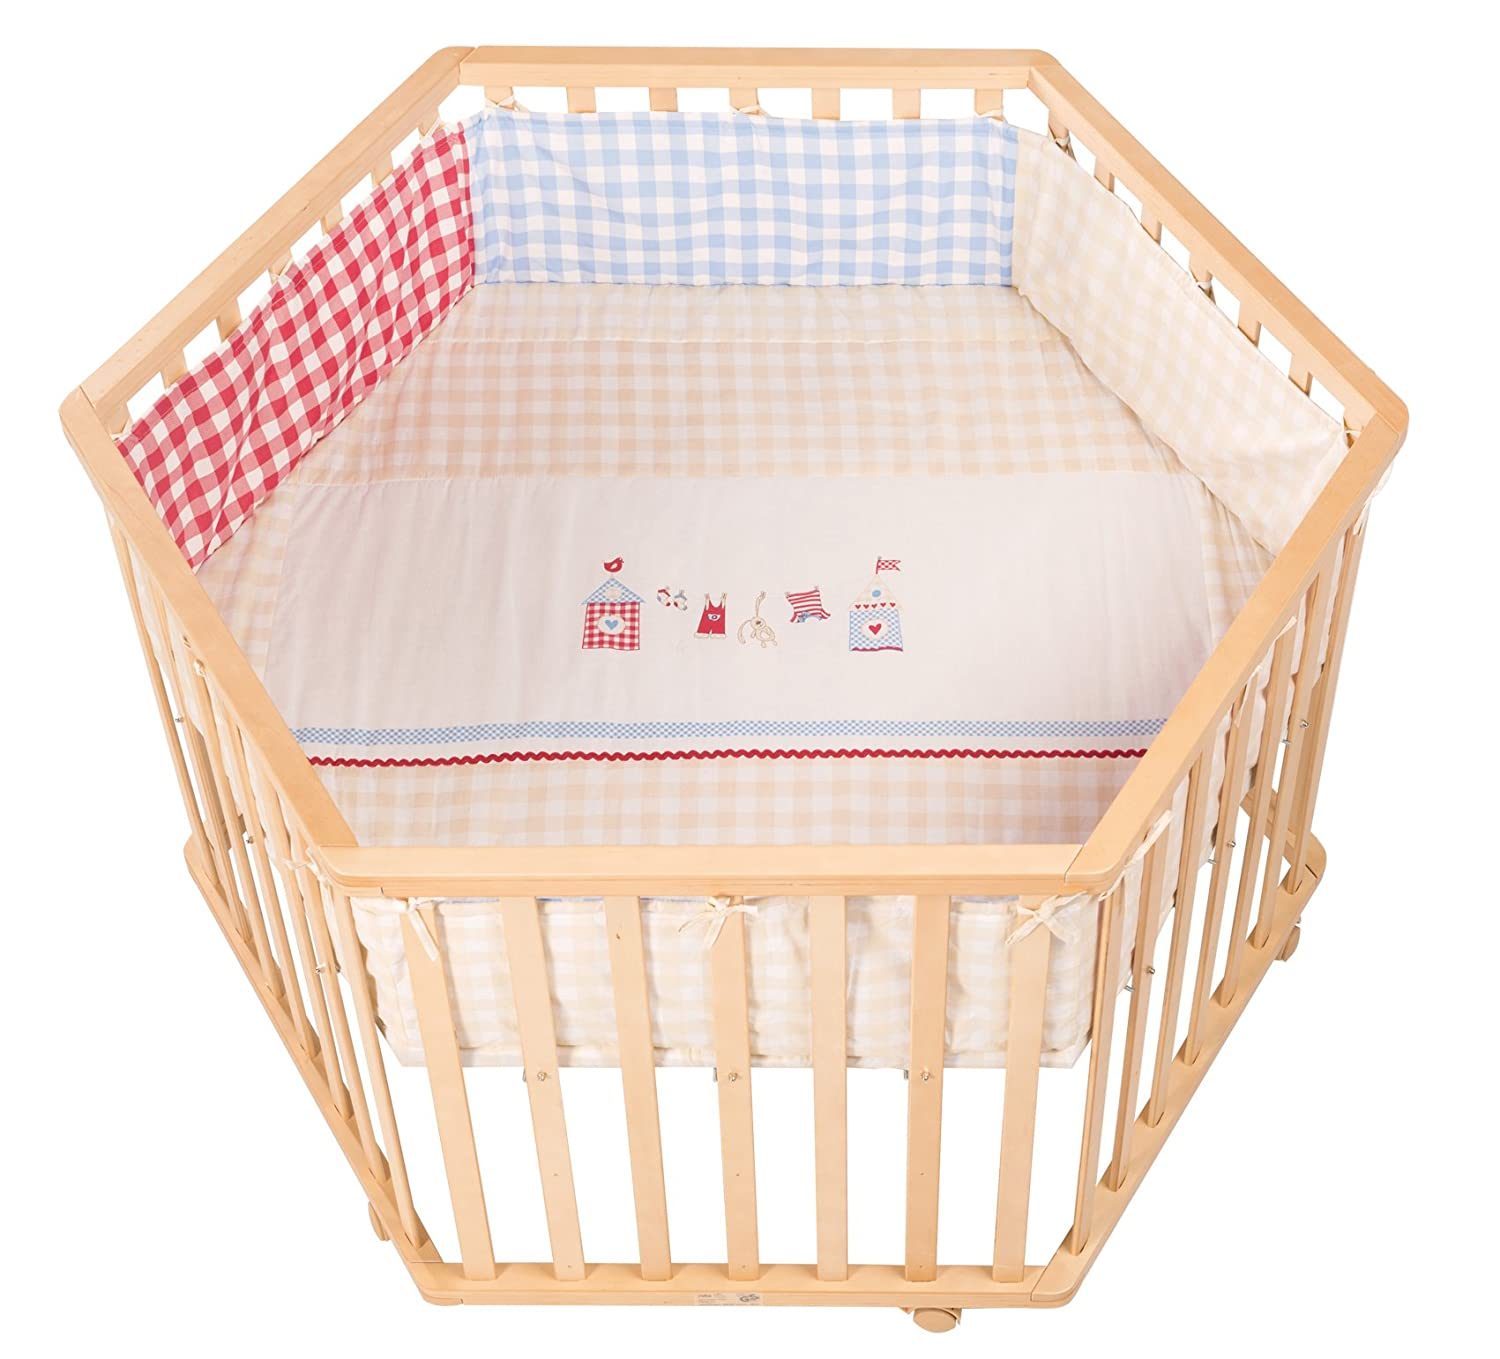 roba-kids 0232V144 - Parque hexagonal, diámetro 120 cm, en madera maciza natural, regulable a tres alturas 0232 V144